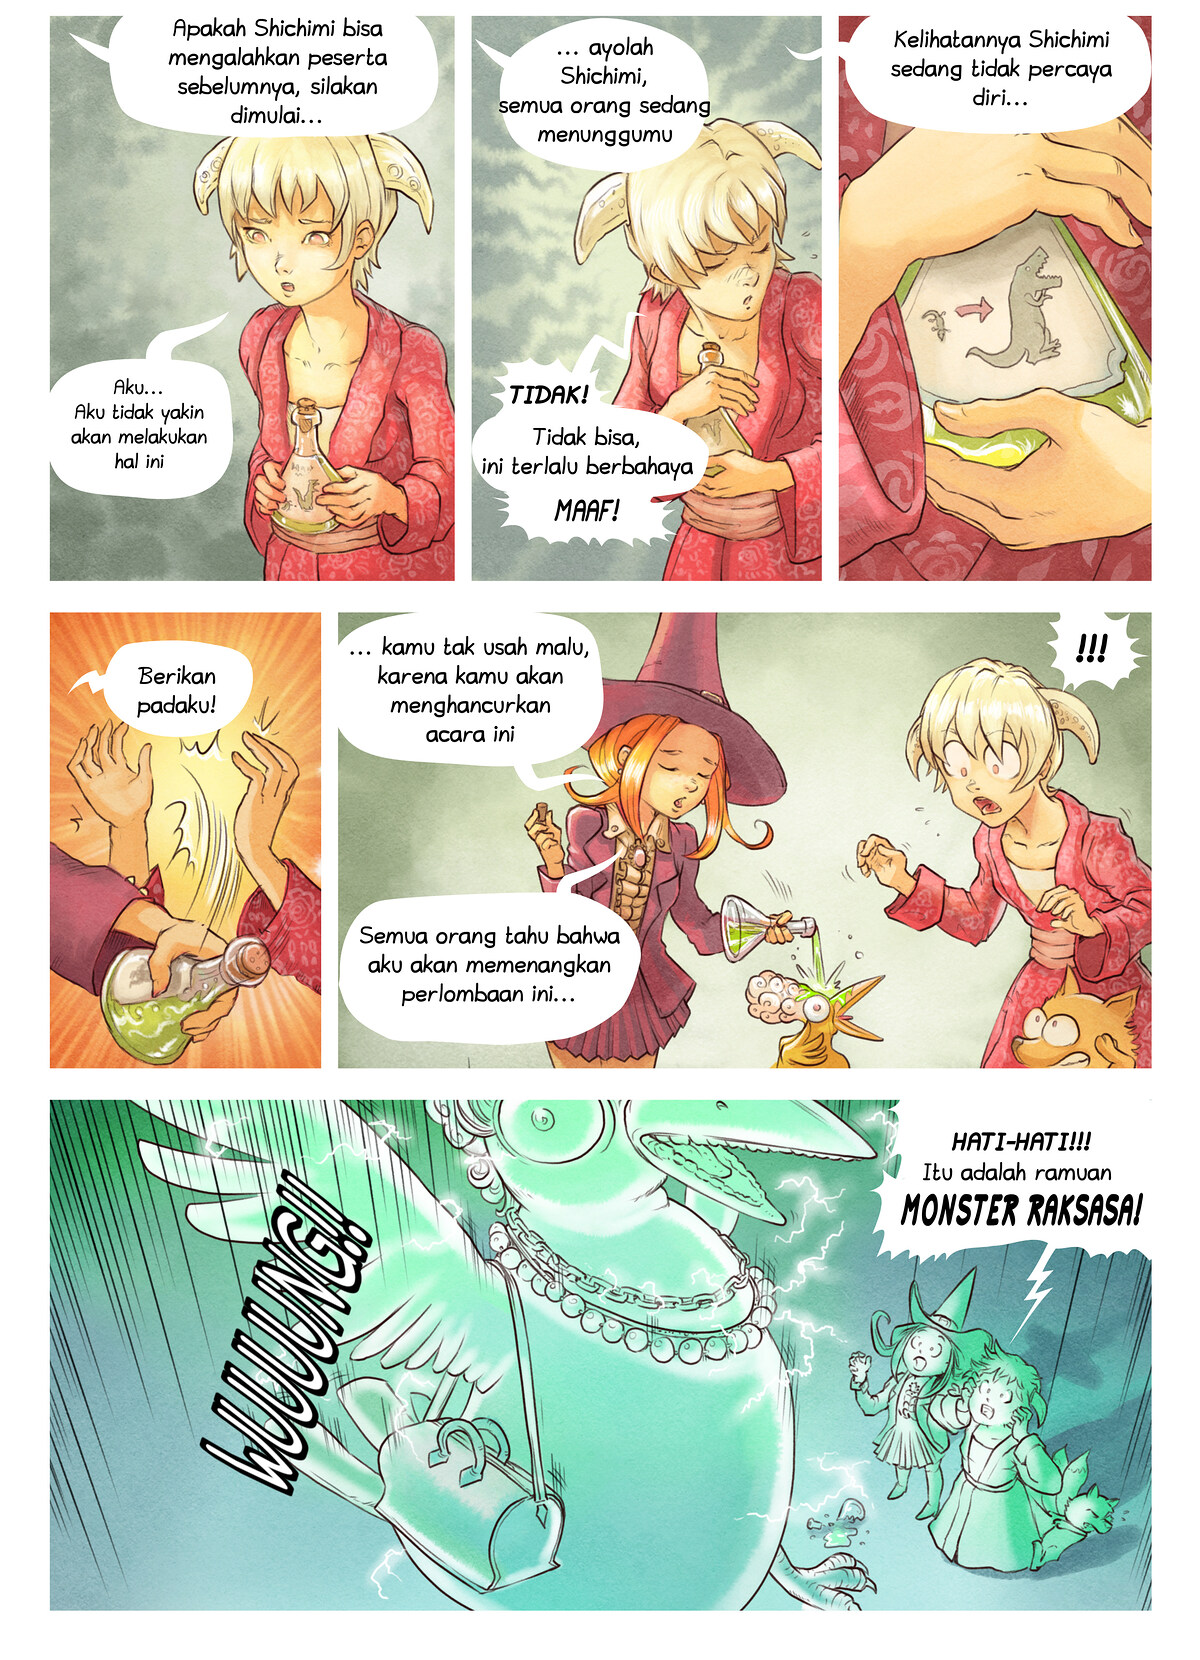 A webcomic page of Pepper&Carrot, episode 6 [id], halaman 6